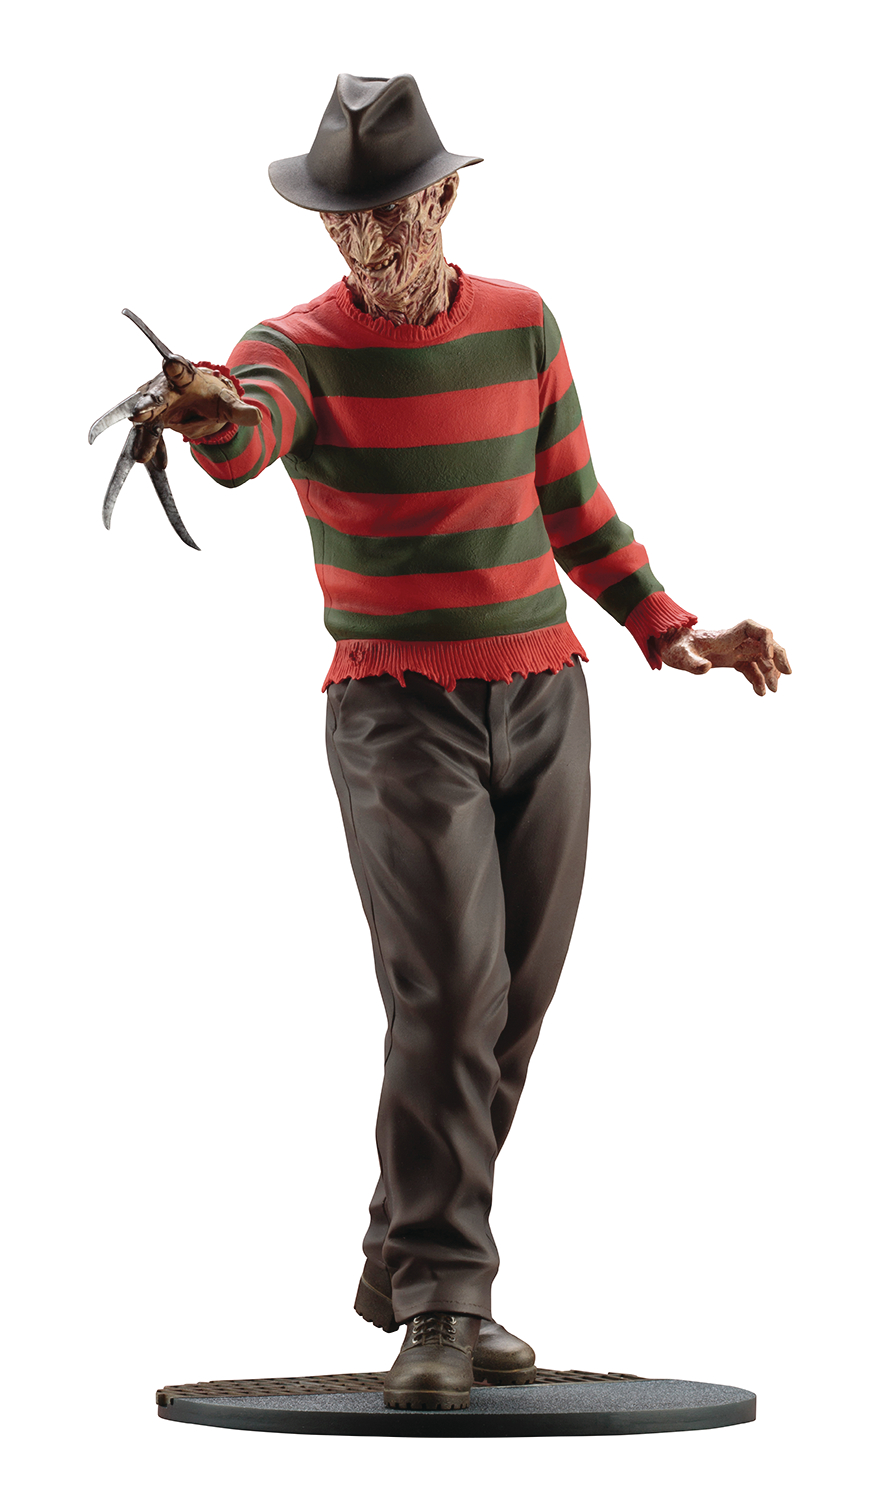 NIGHTMARE ON ELM STREET 4 FREDDY KRUEGER ARTFX STATUE (O/A)